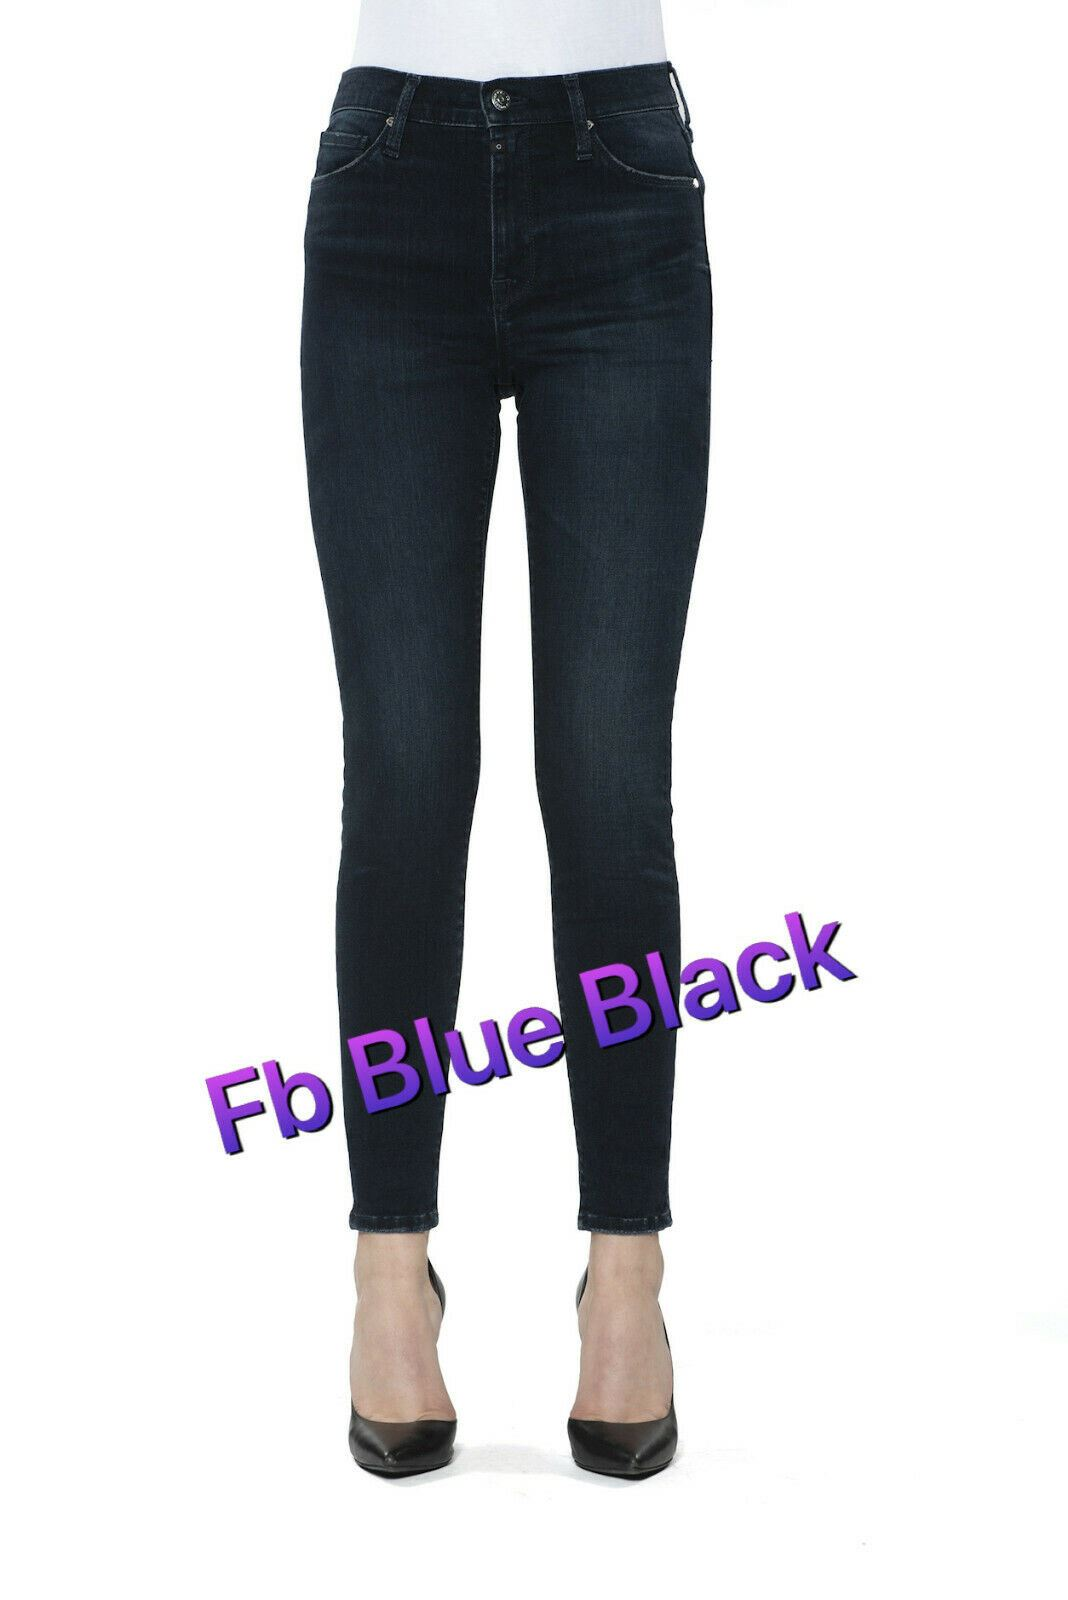 "Cup of Joe ""Sophia"" Stretchjeans -High Waist- Super Skinny - Neuware,  *C O J*"